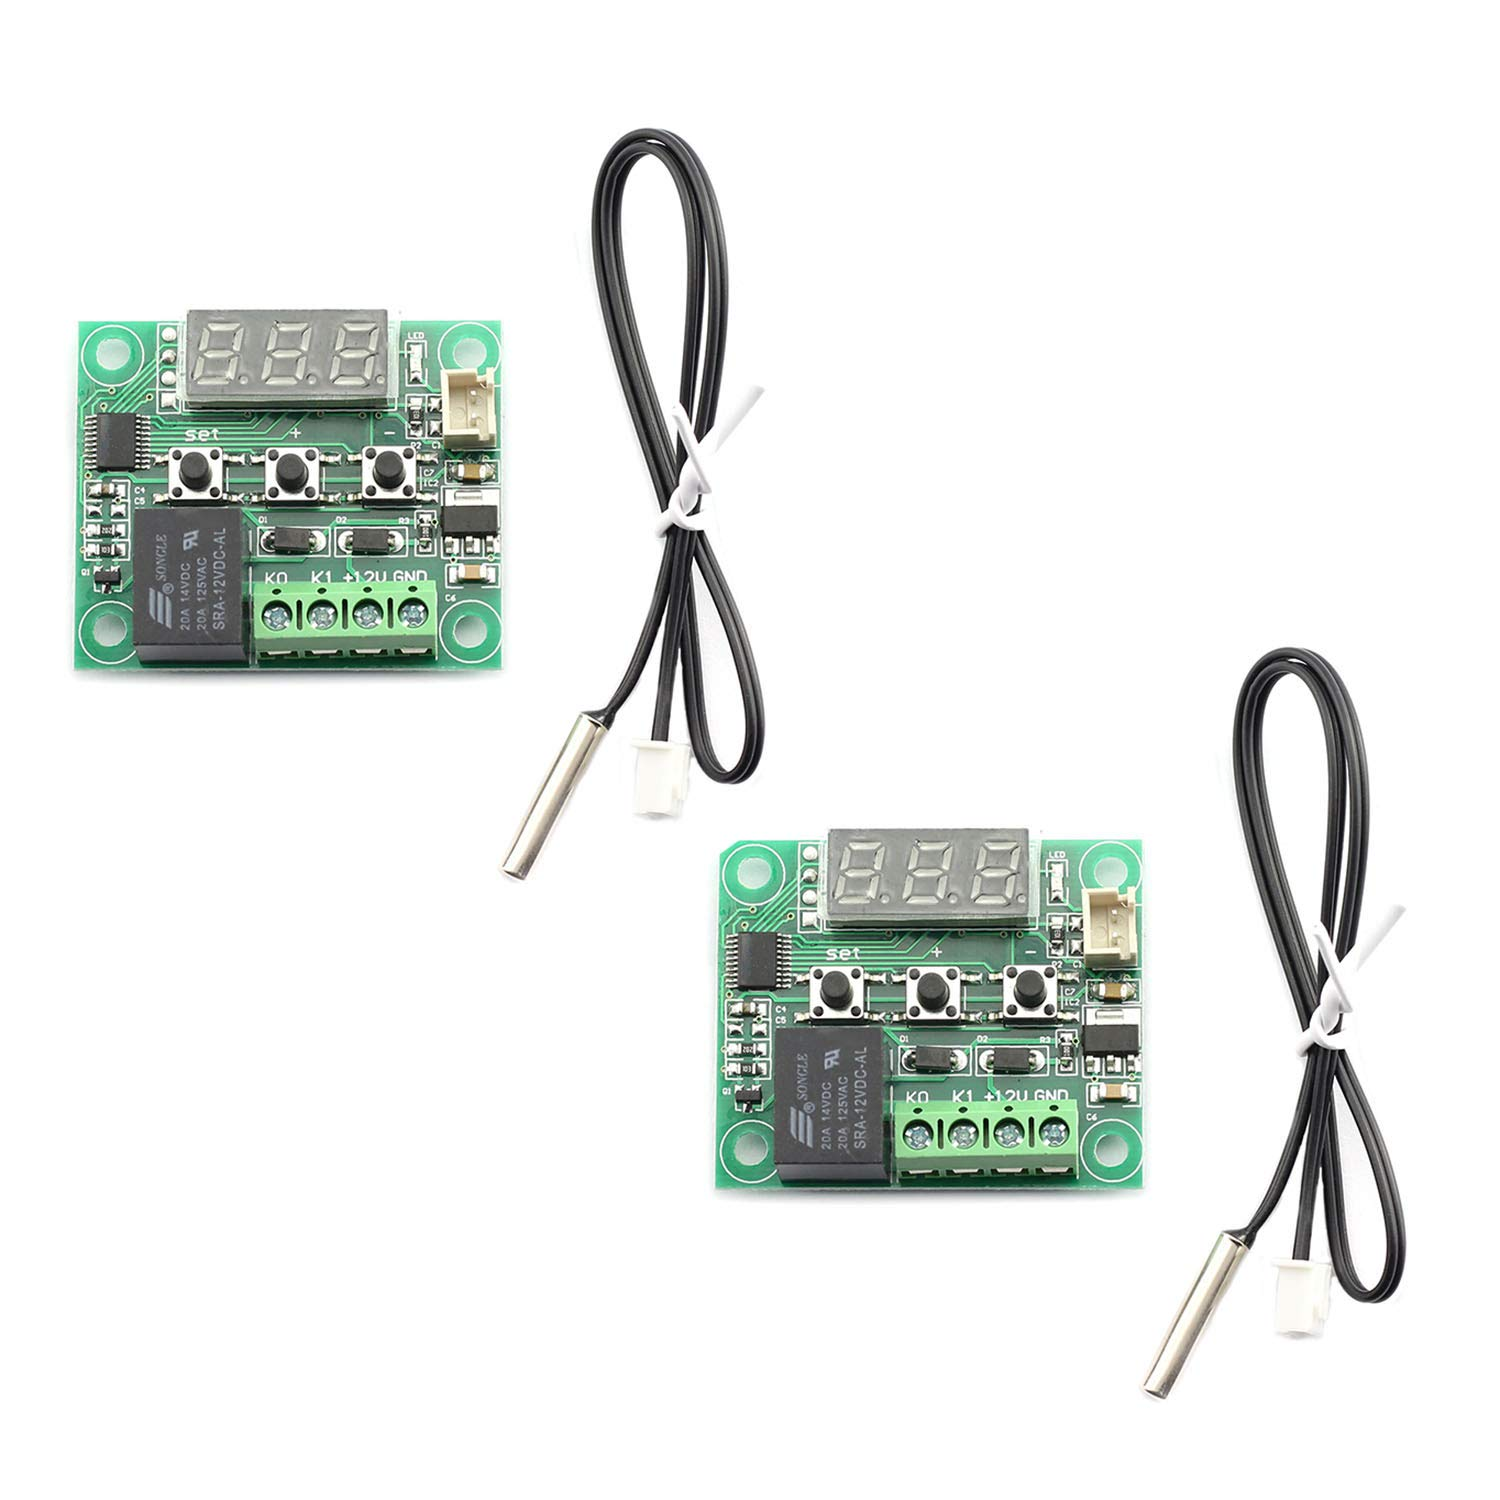 Maxmoral 2-Pack XH-W1209 Digital Thermostat Temperature Controller High Precision Micro Temperature Control Switch Board with LED Display